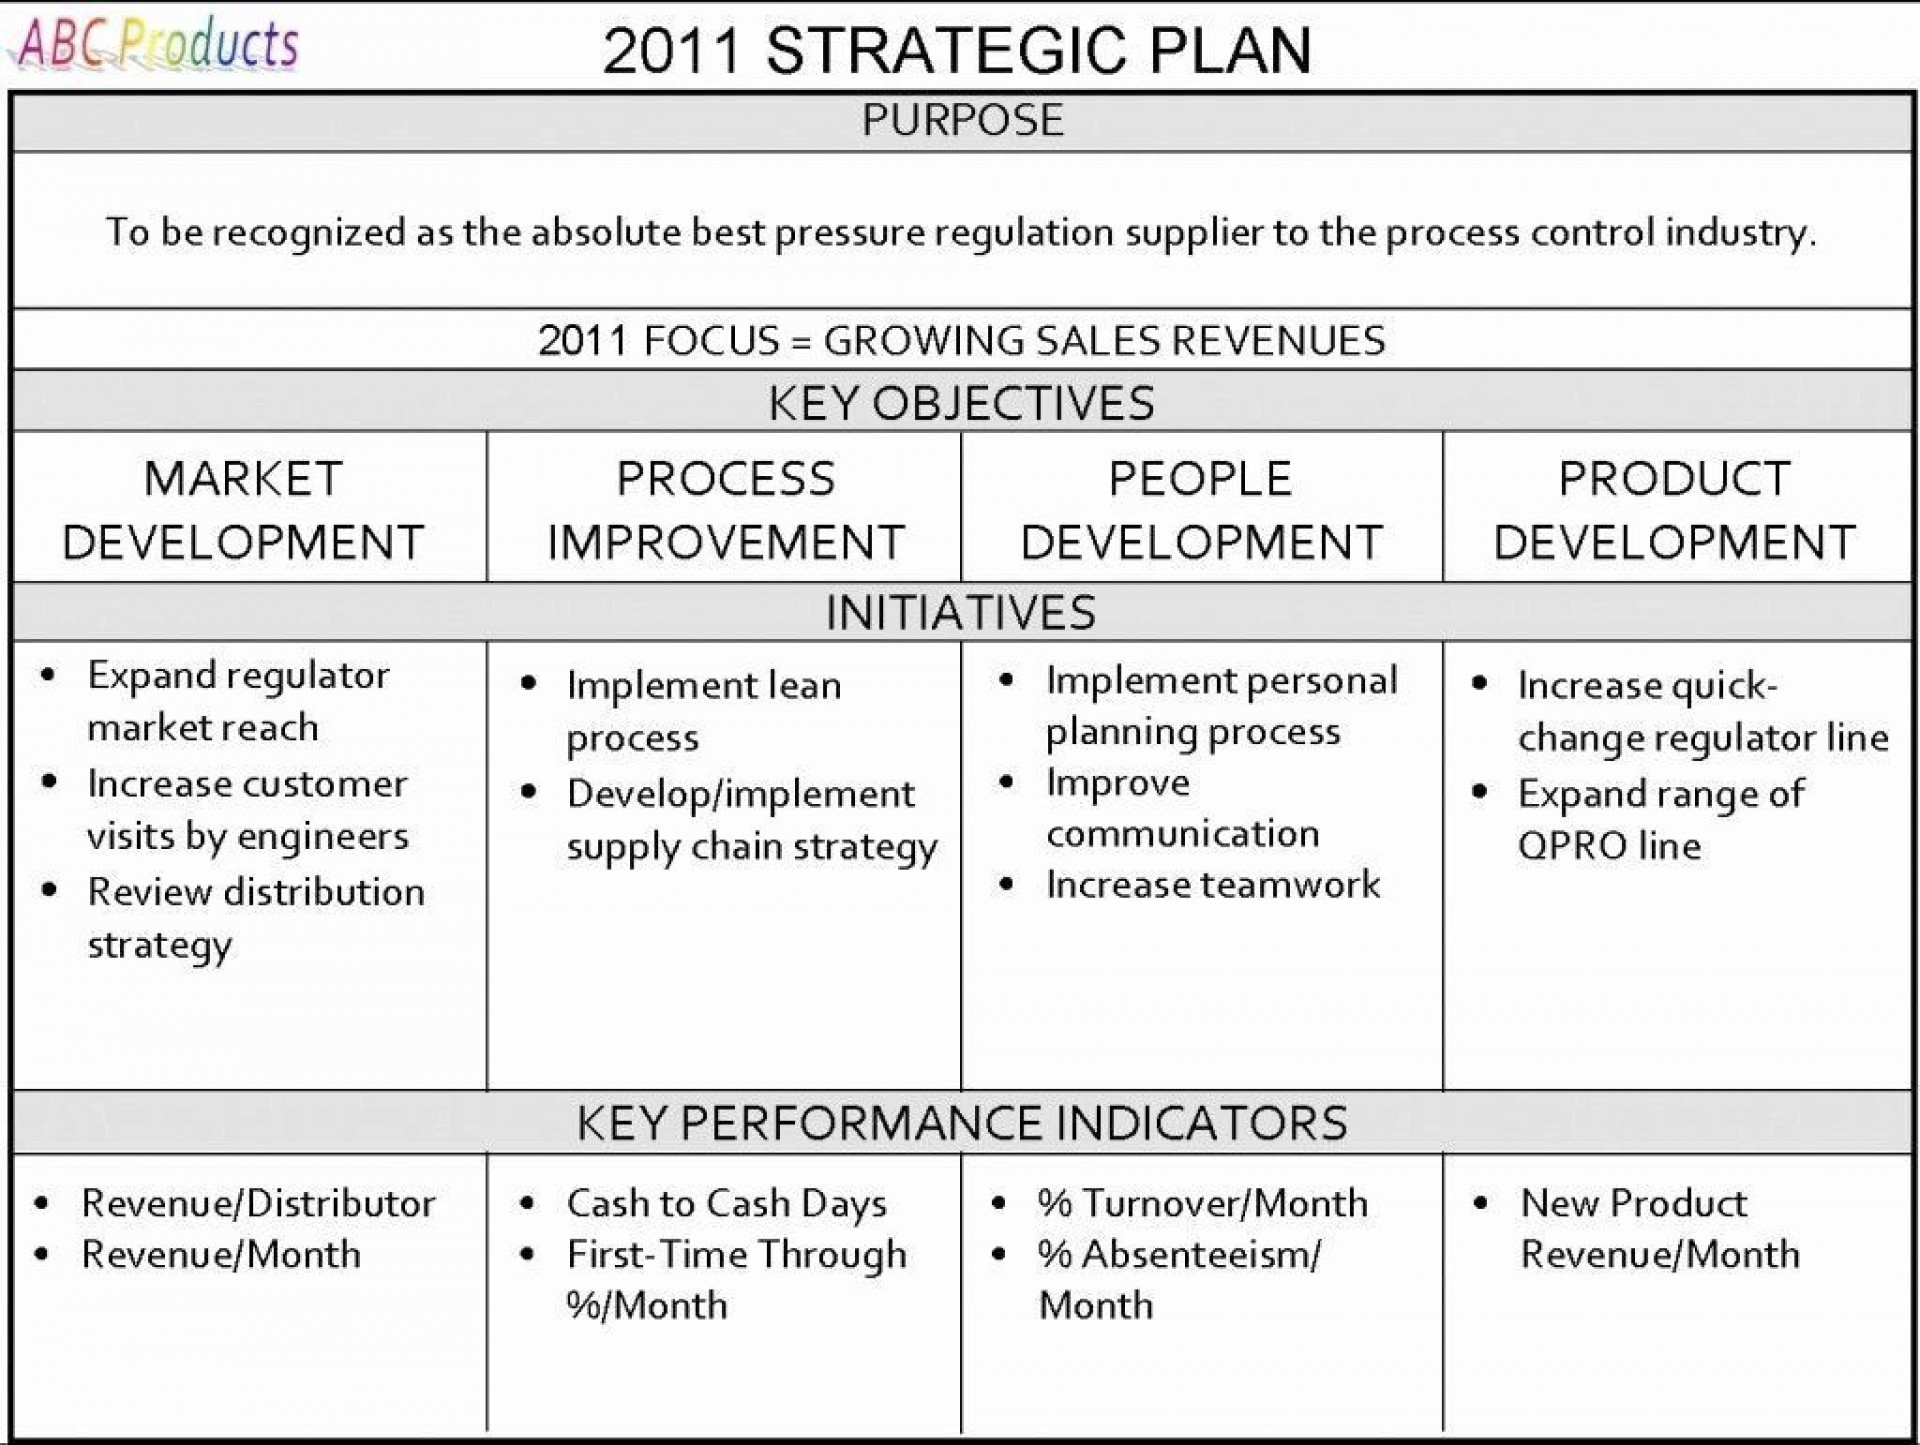 002 Archaicawful Strategic Plan Outline Template Picture  Marketing1920